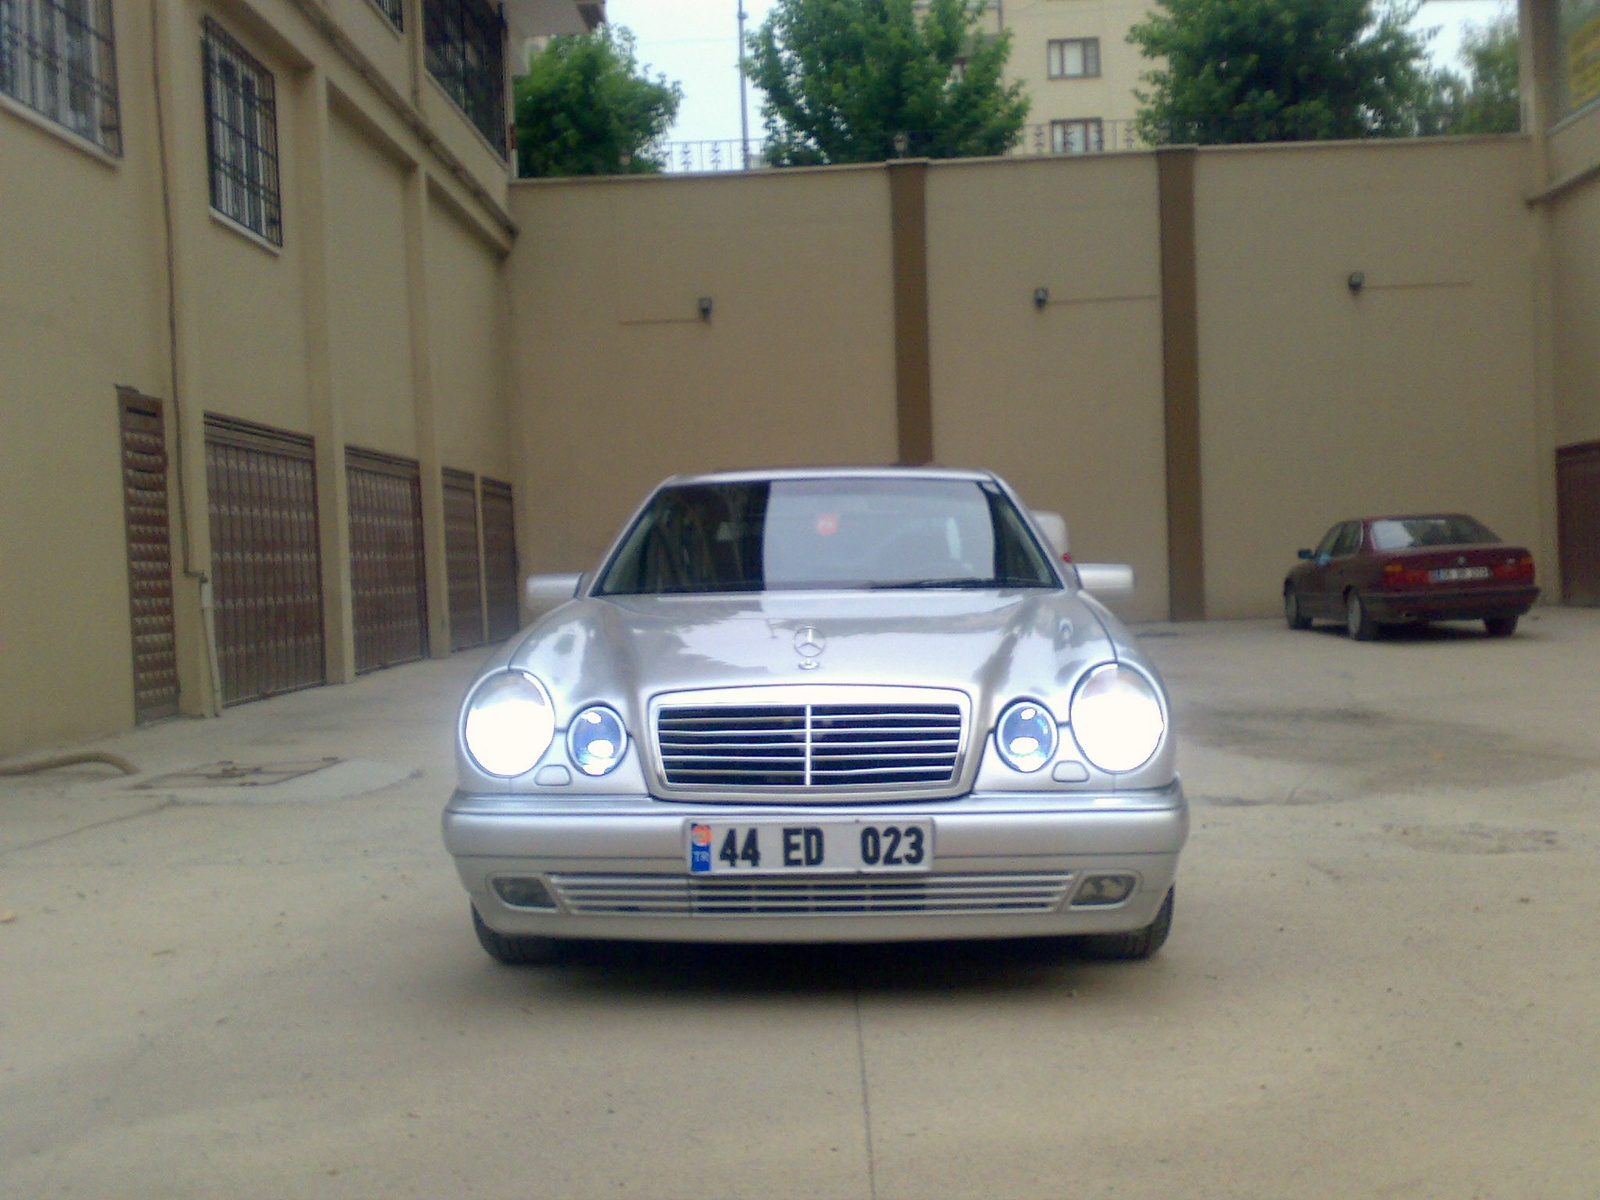 Picture of 1999 mercedes benz e class exterior for 1999 mercedes benz e class